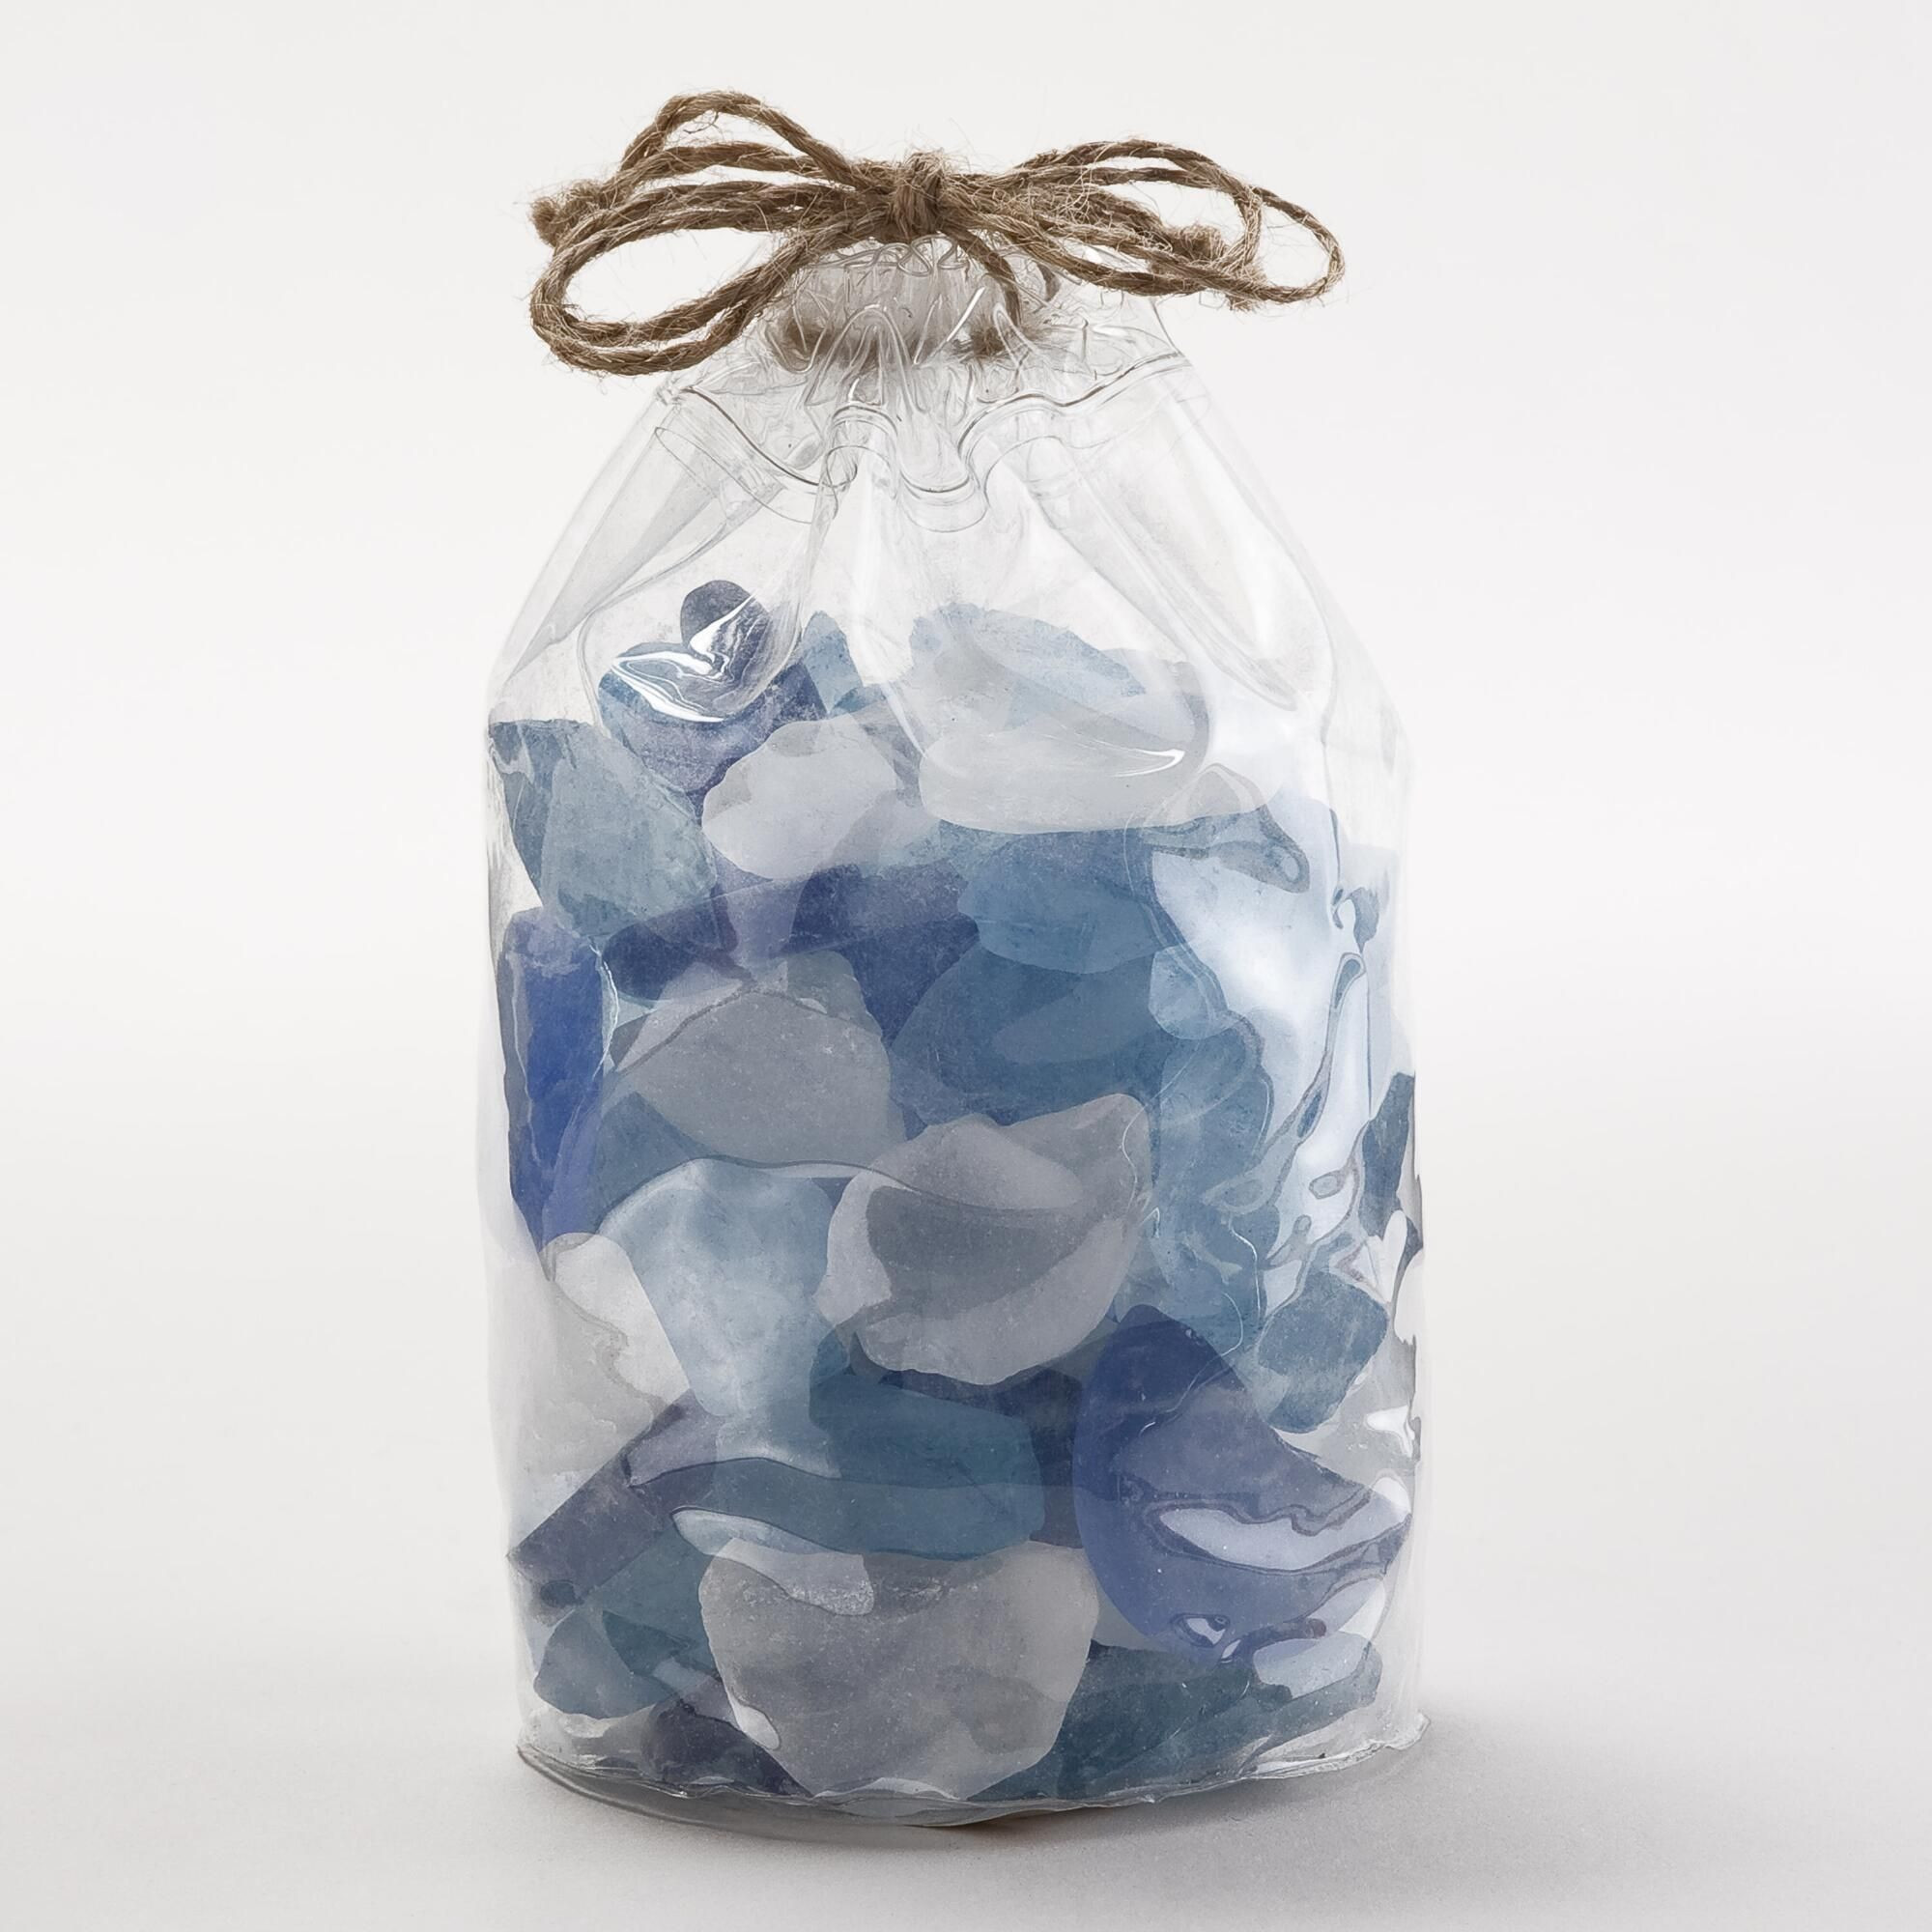 colorfill vase filler of add a touch of the ocean with our blue seaglass vase fillers use within add a touch of the ocean with our blue seaglass vase fillers use them in